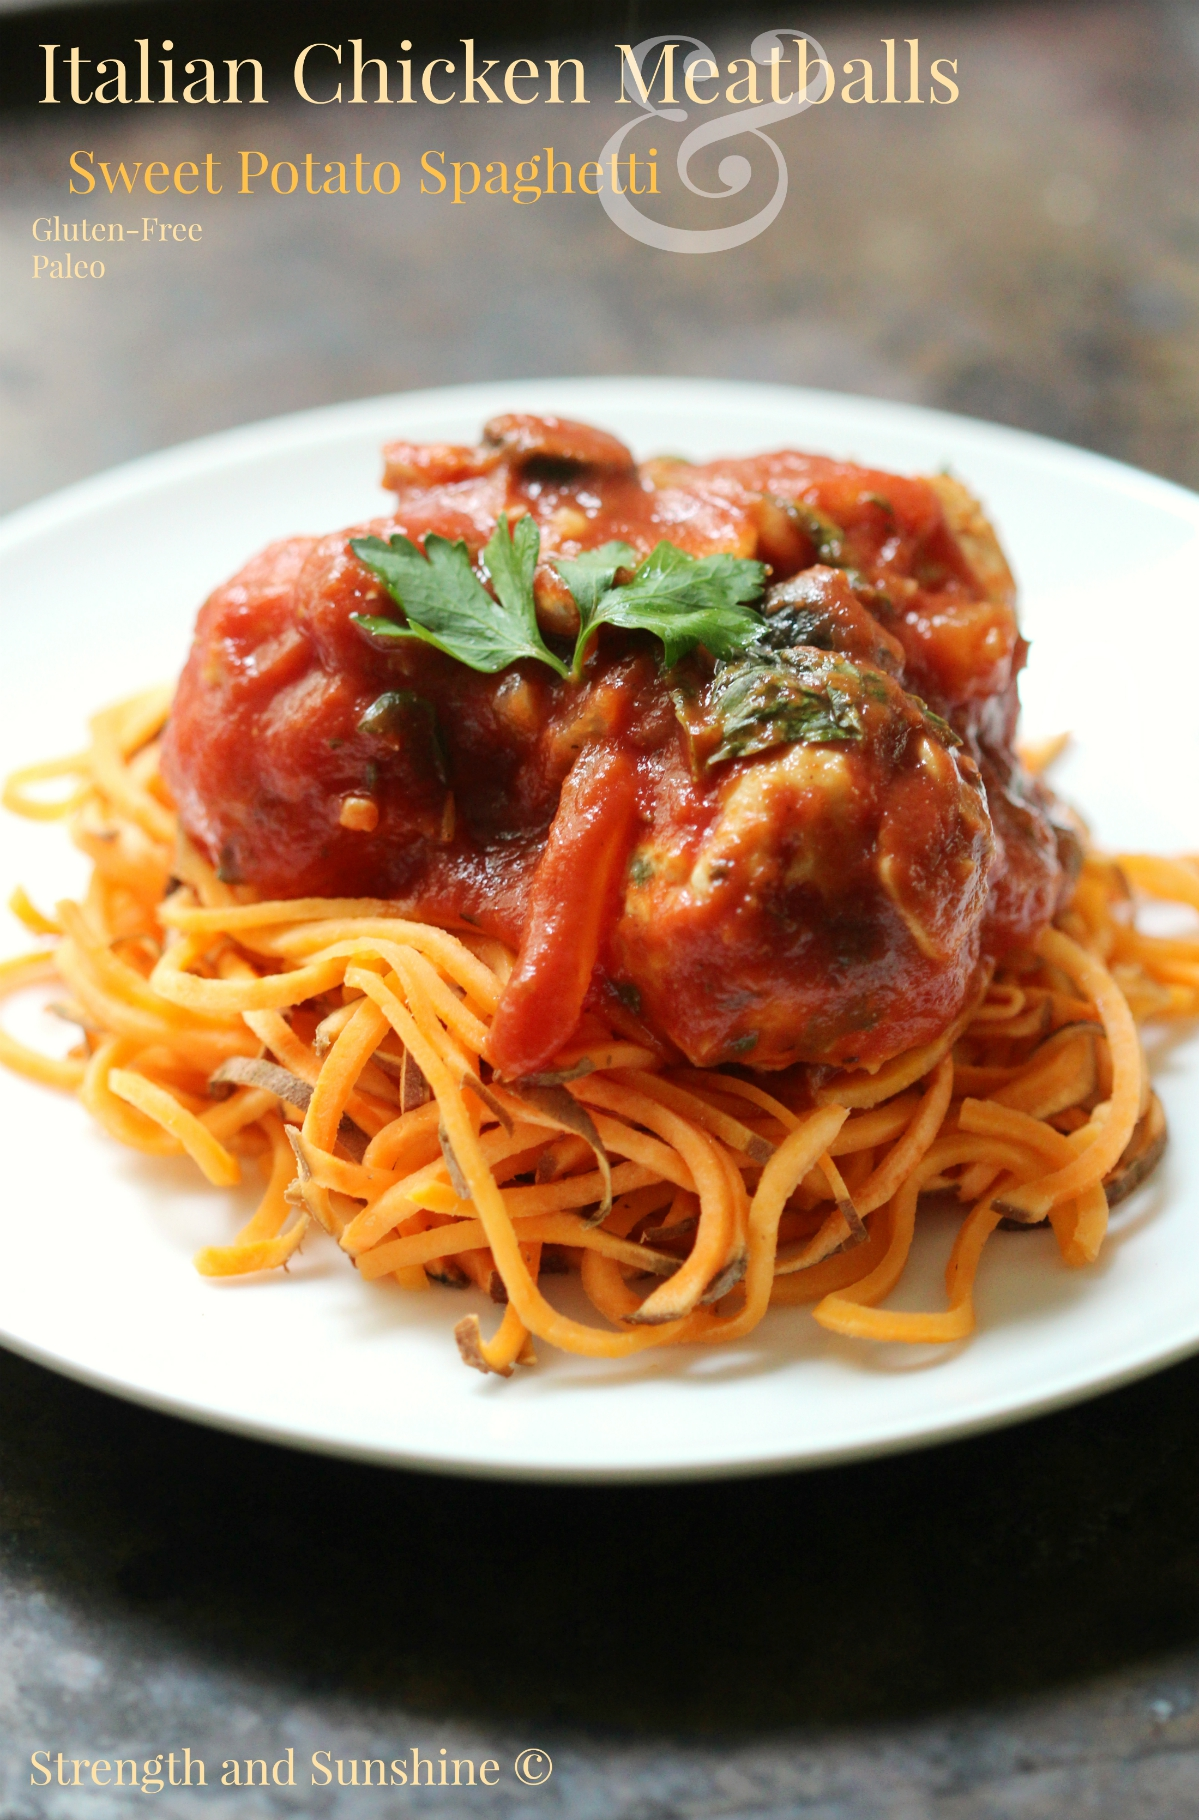 Italian Chicken Meatballs & Sweet Potato Spaghetti | Strength and Sunshine @RebeccaGF666 Italian chicken meatballs baked and simmered in a homemade tomato sauce, served over easy sweet potato spaghetti. Gluten-free, allergy-free, and paleo, this delicious version of the classic will quickly become a new family dinner favorite. #sponsored #TheRecipeReDux